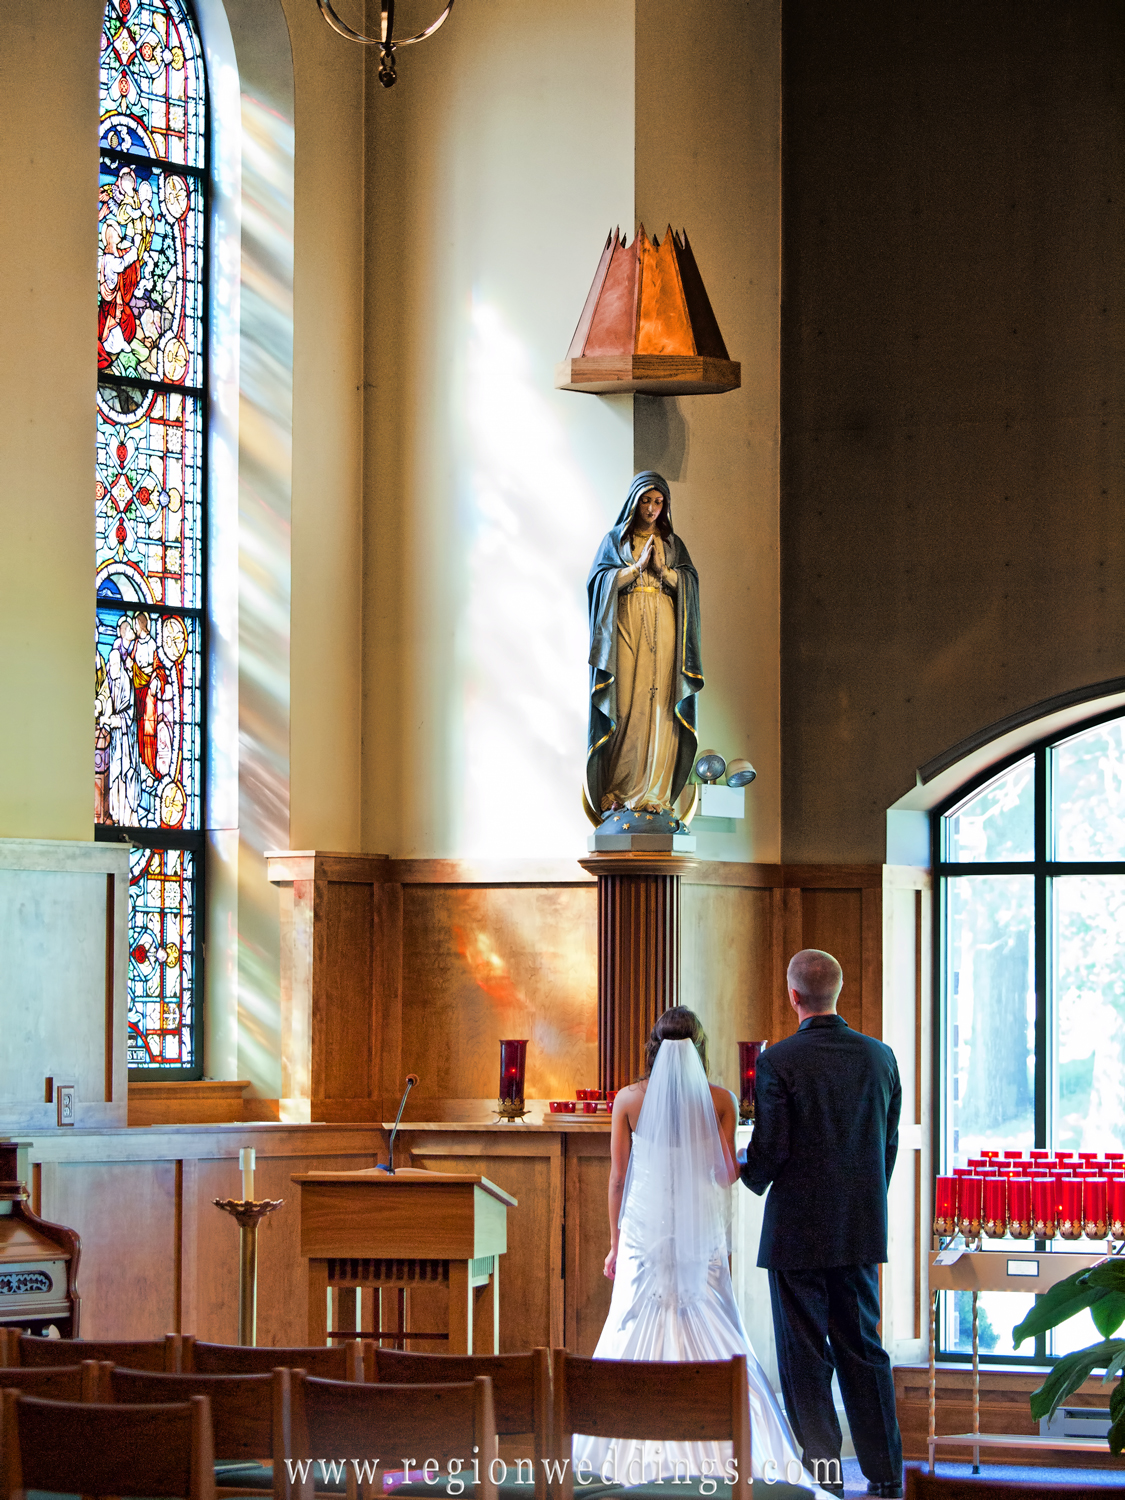 The bride and groom pray underneath the statue of Mary at St. Michael's Church.